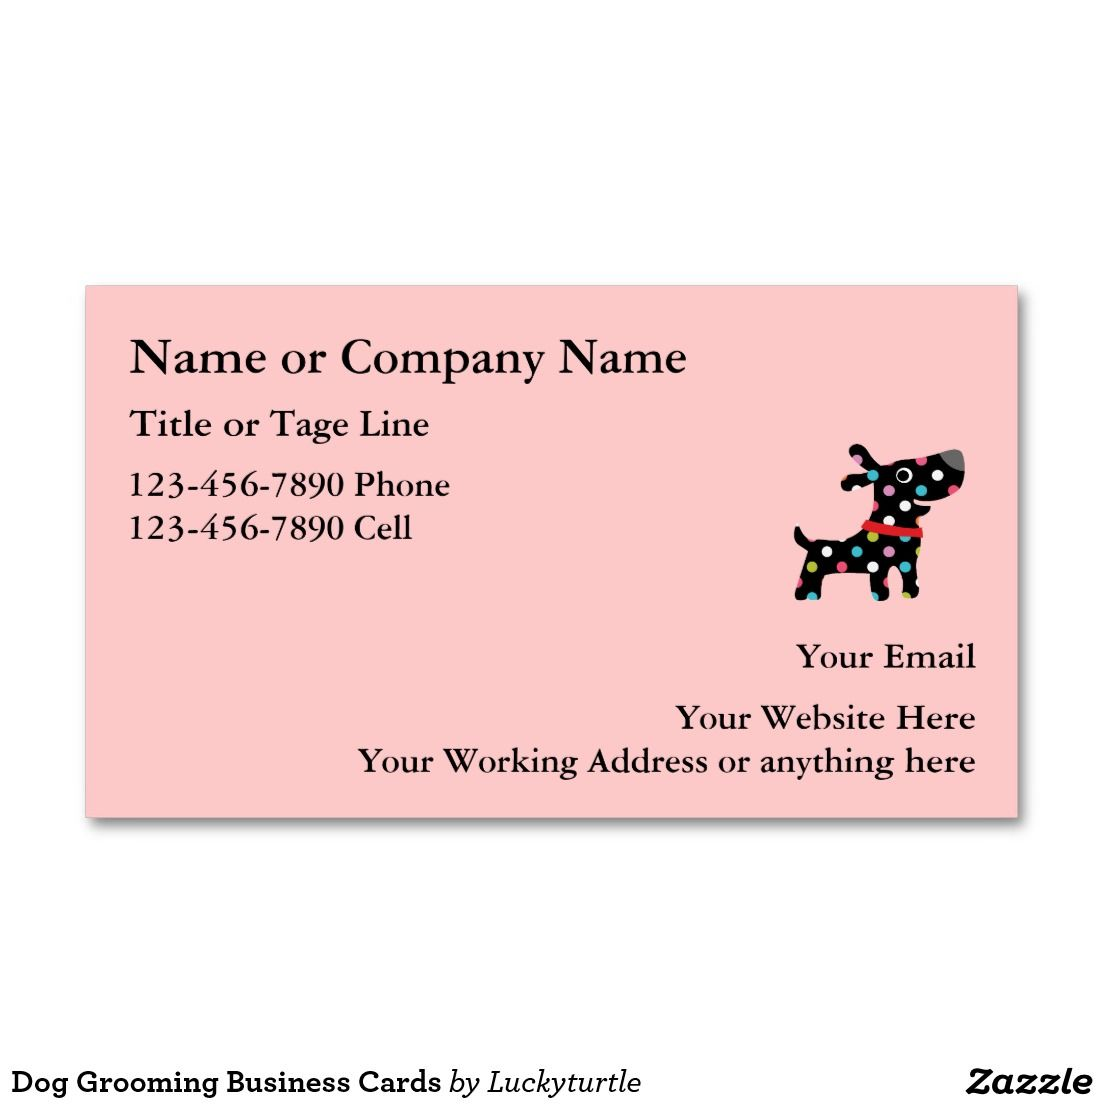 Dog Grooming Business Cards | Business cards, Business and Dog